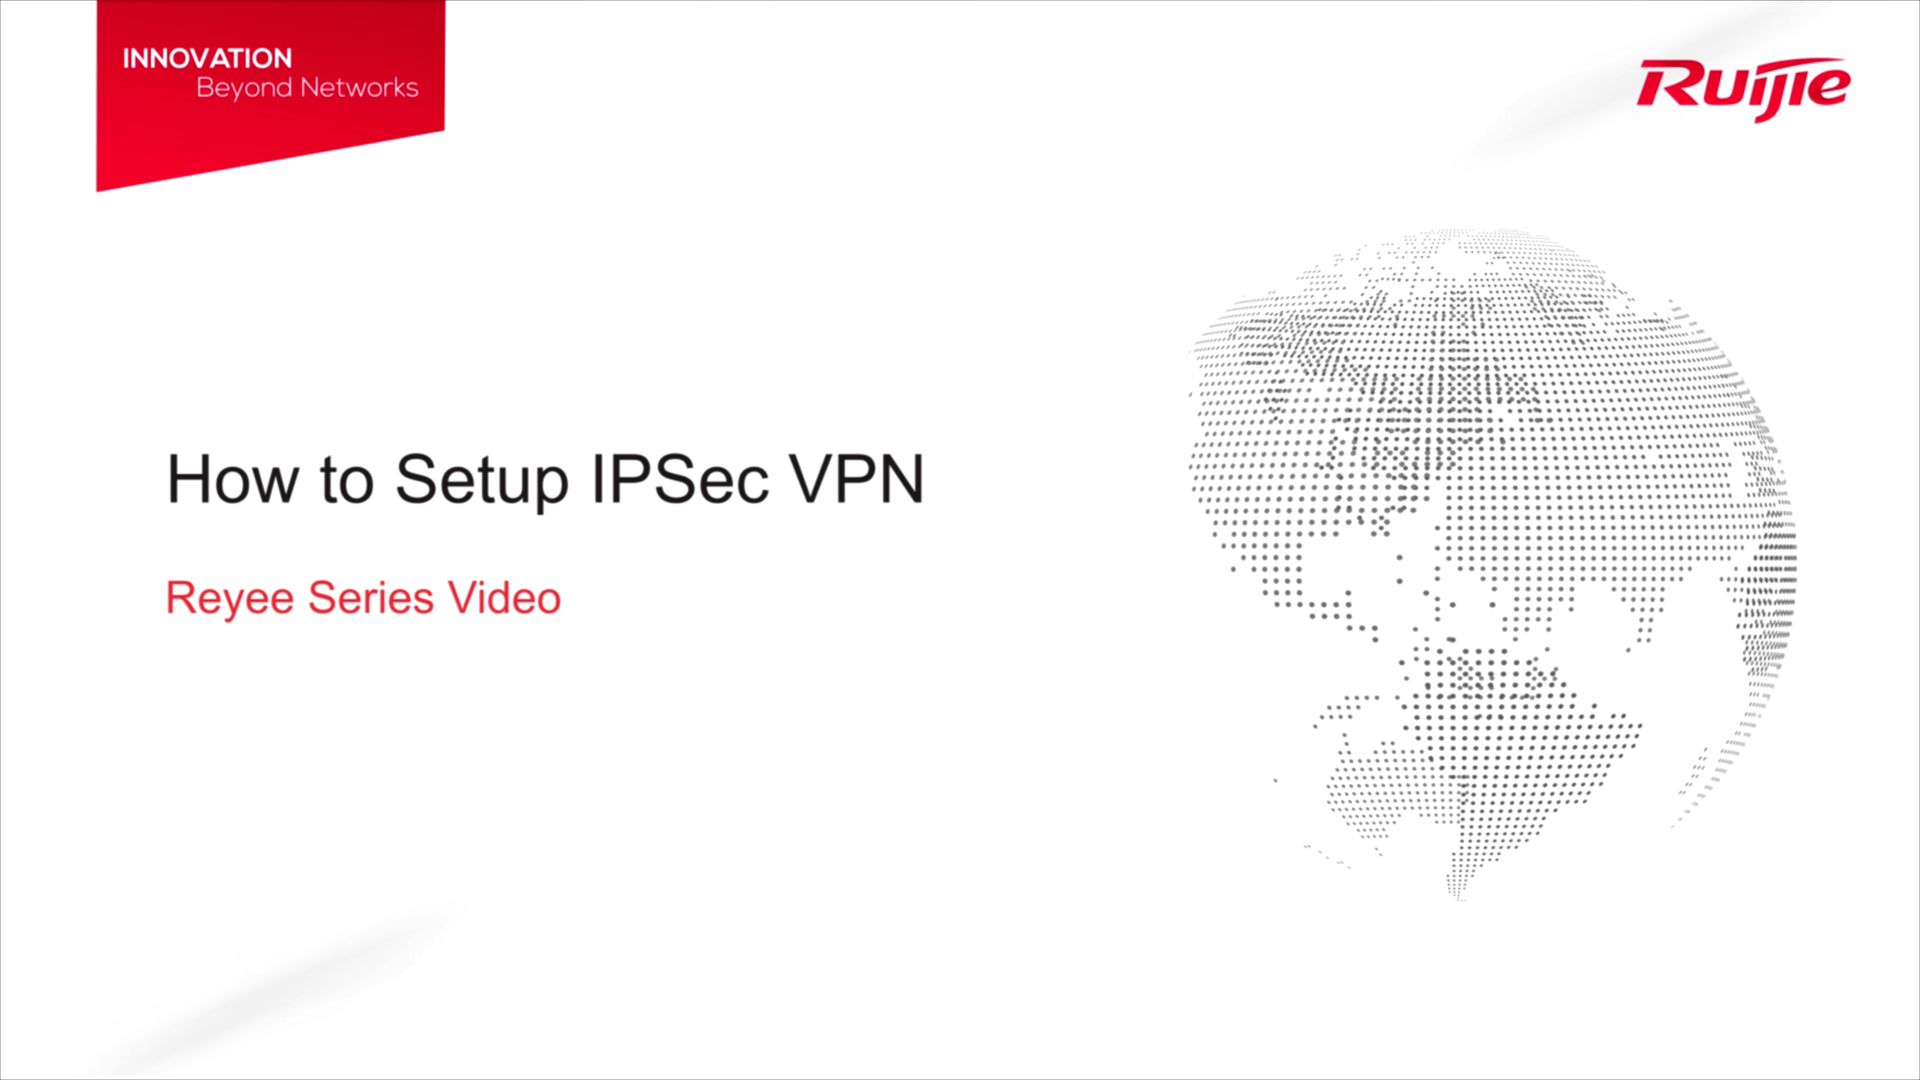 How to Setup IPsec VPN